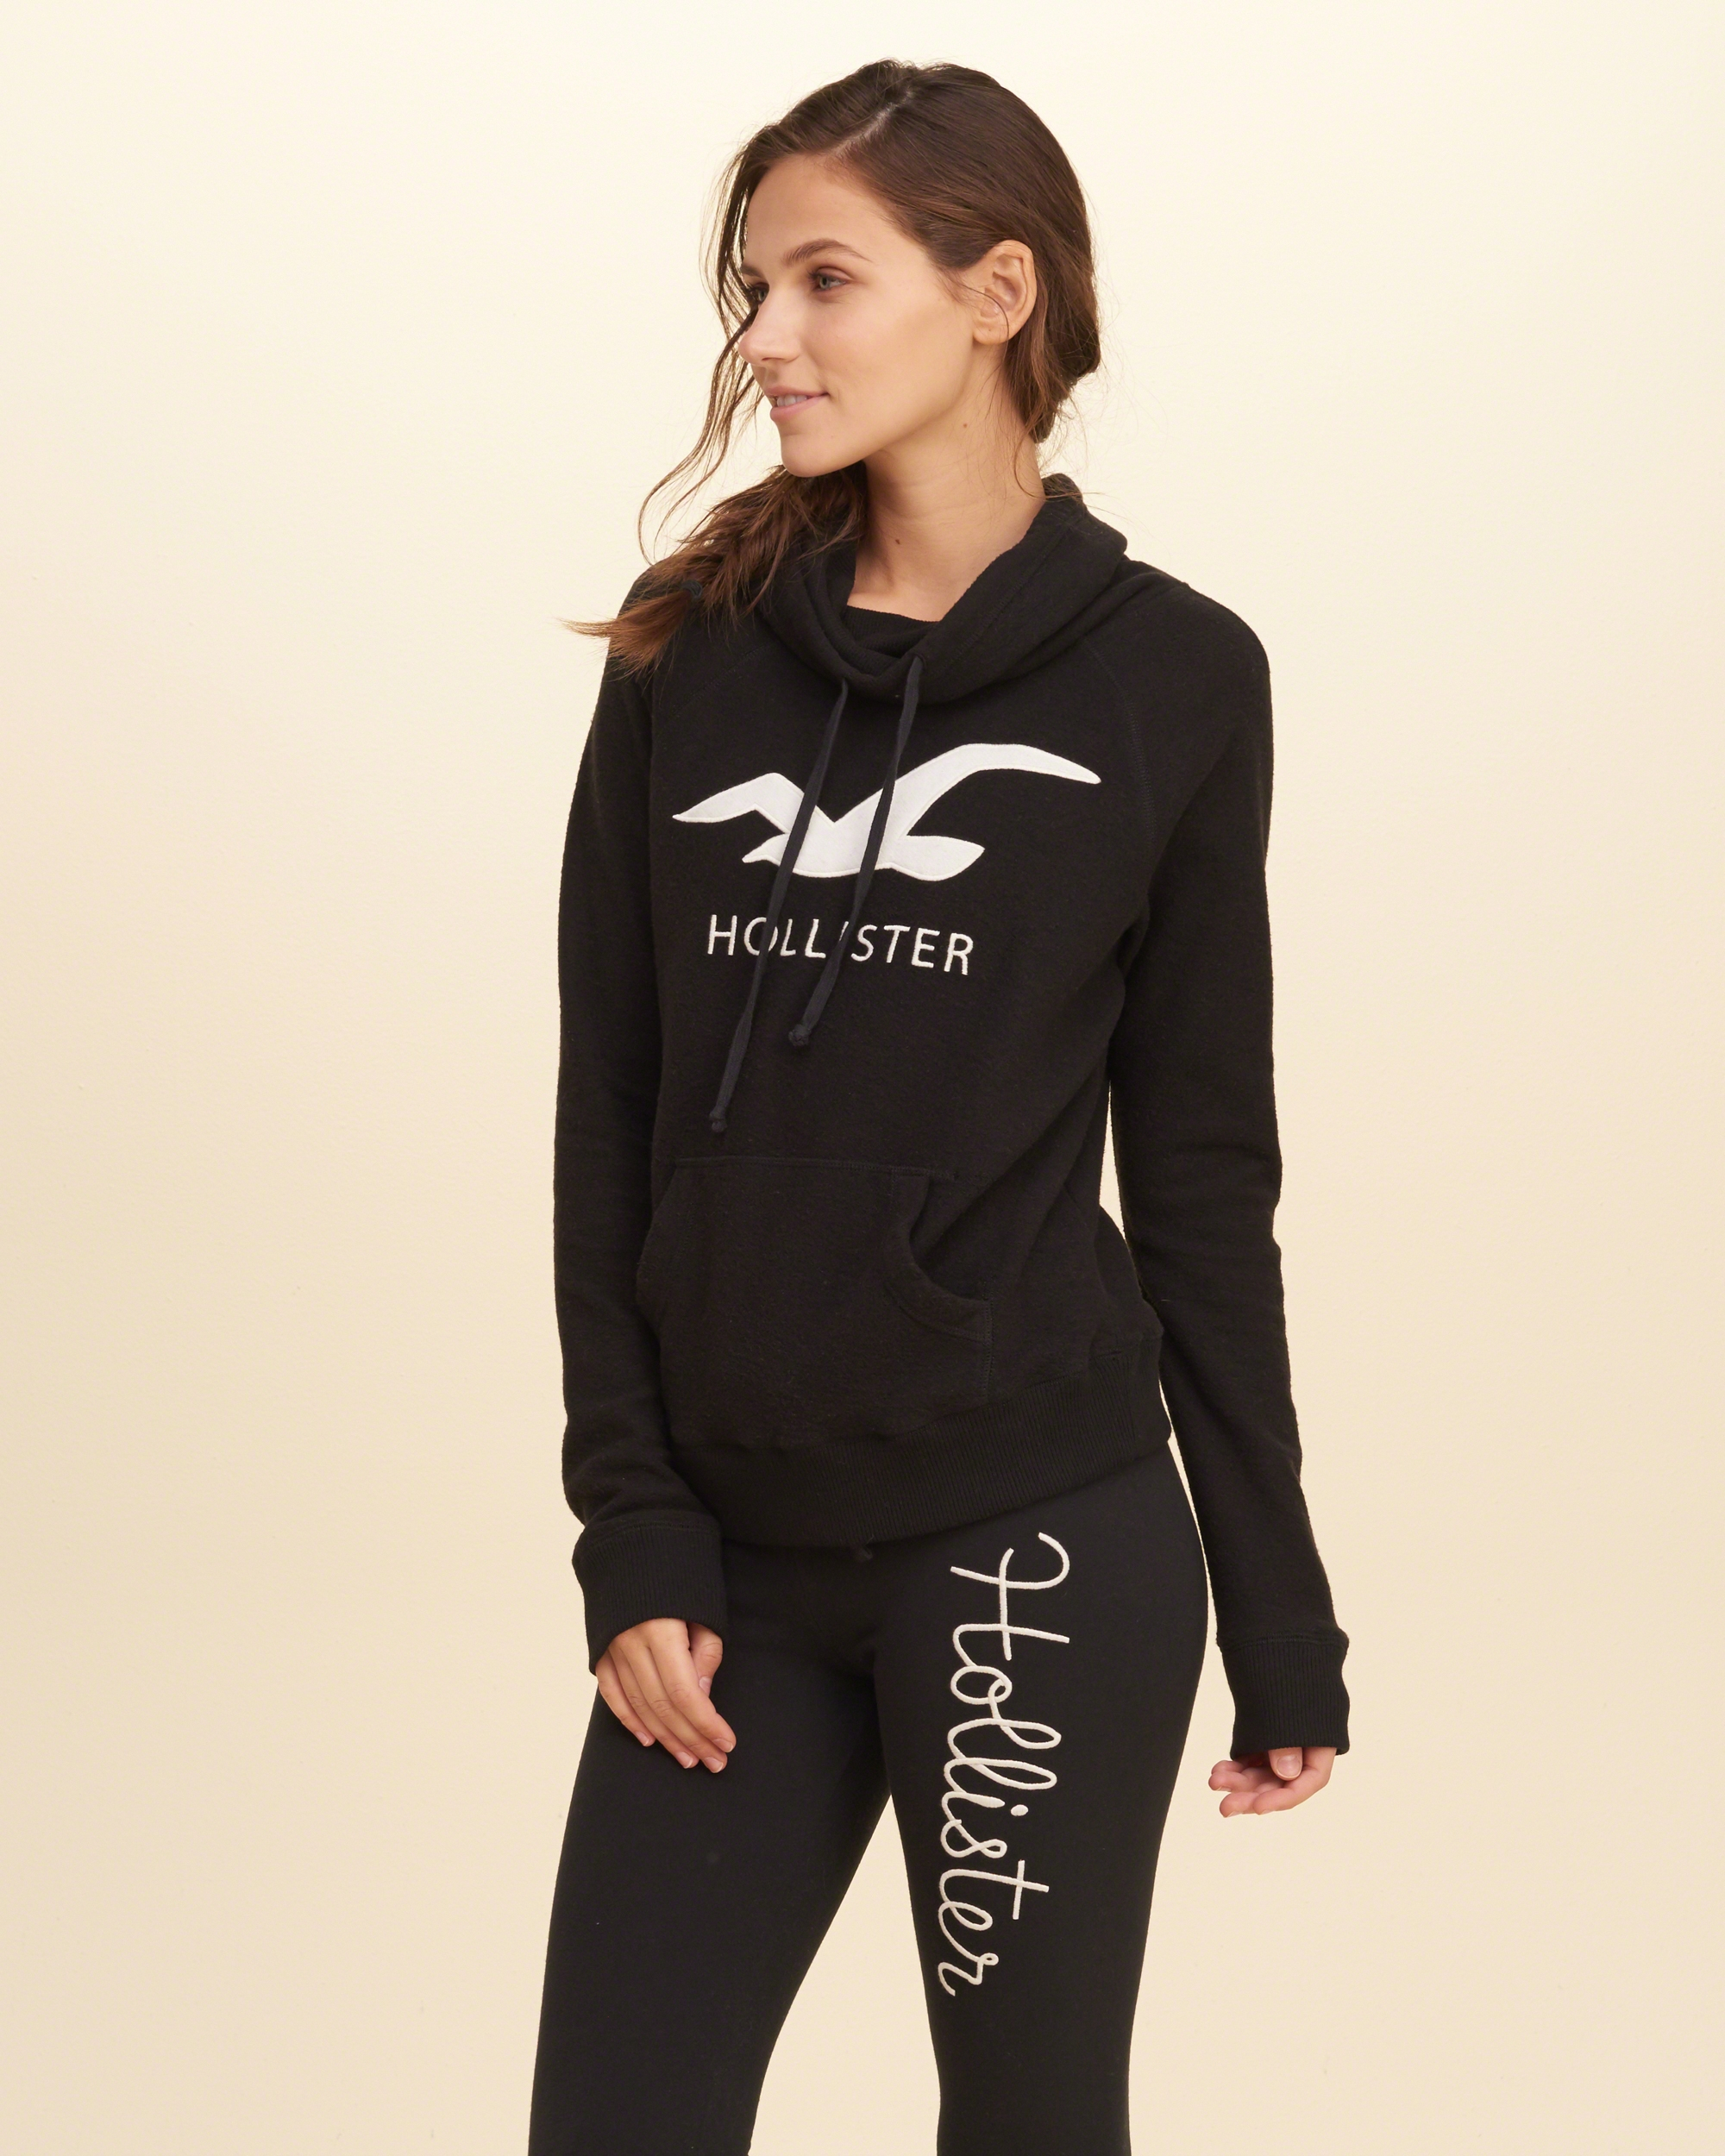 Lyst - Hollister Cowl Neck Logo Graphic Sweatshirt in Black